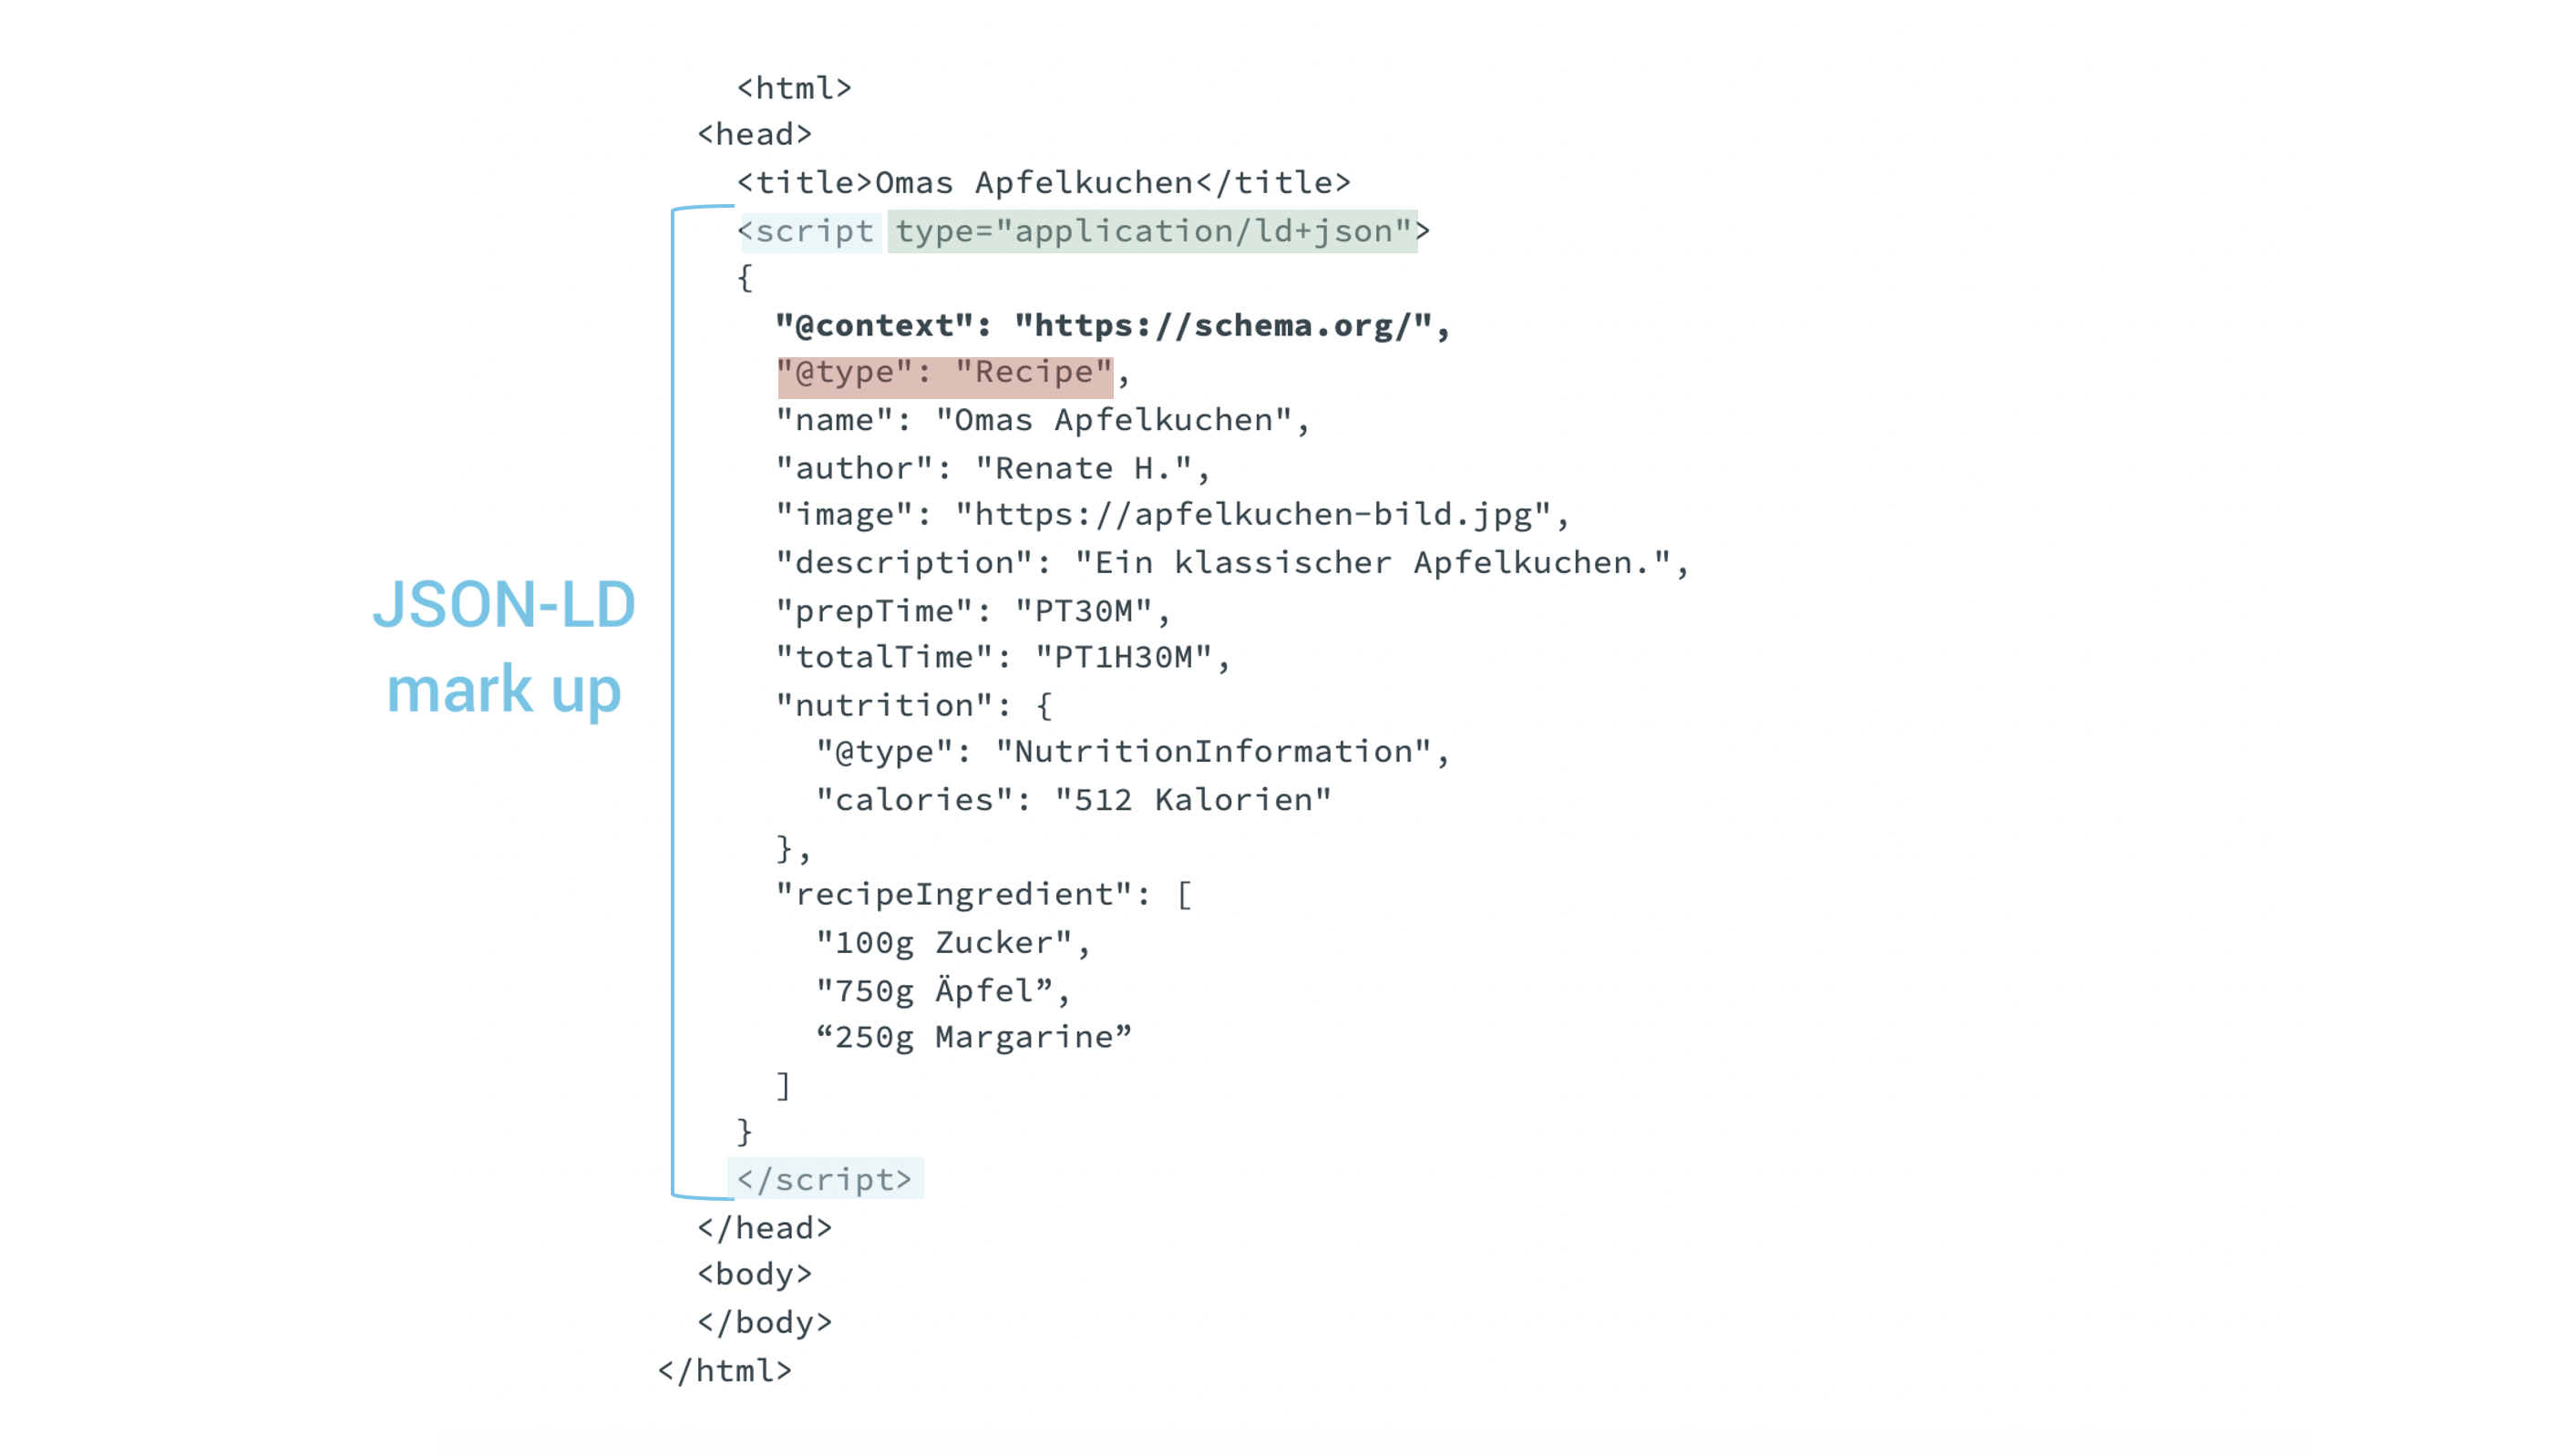 Markup of a cake recipe with structured data in JSON-LD format.